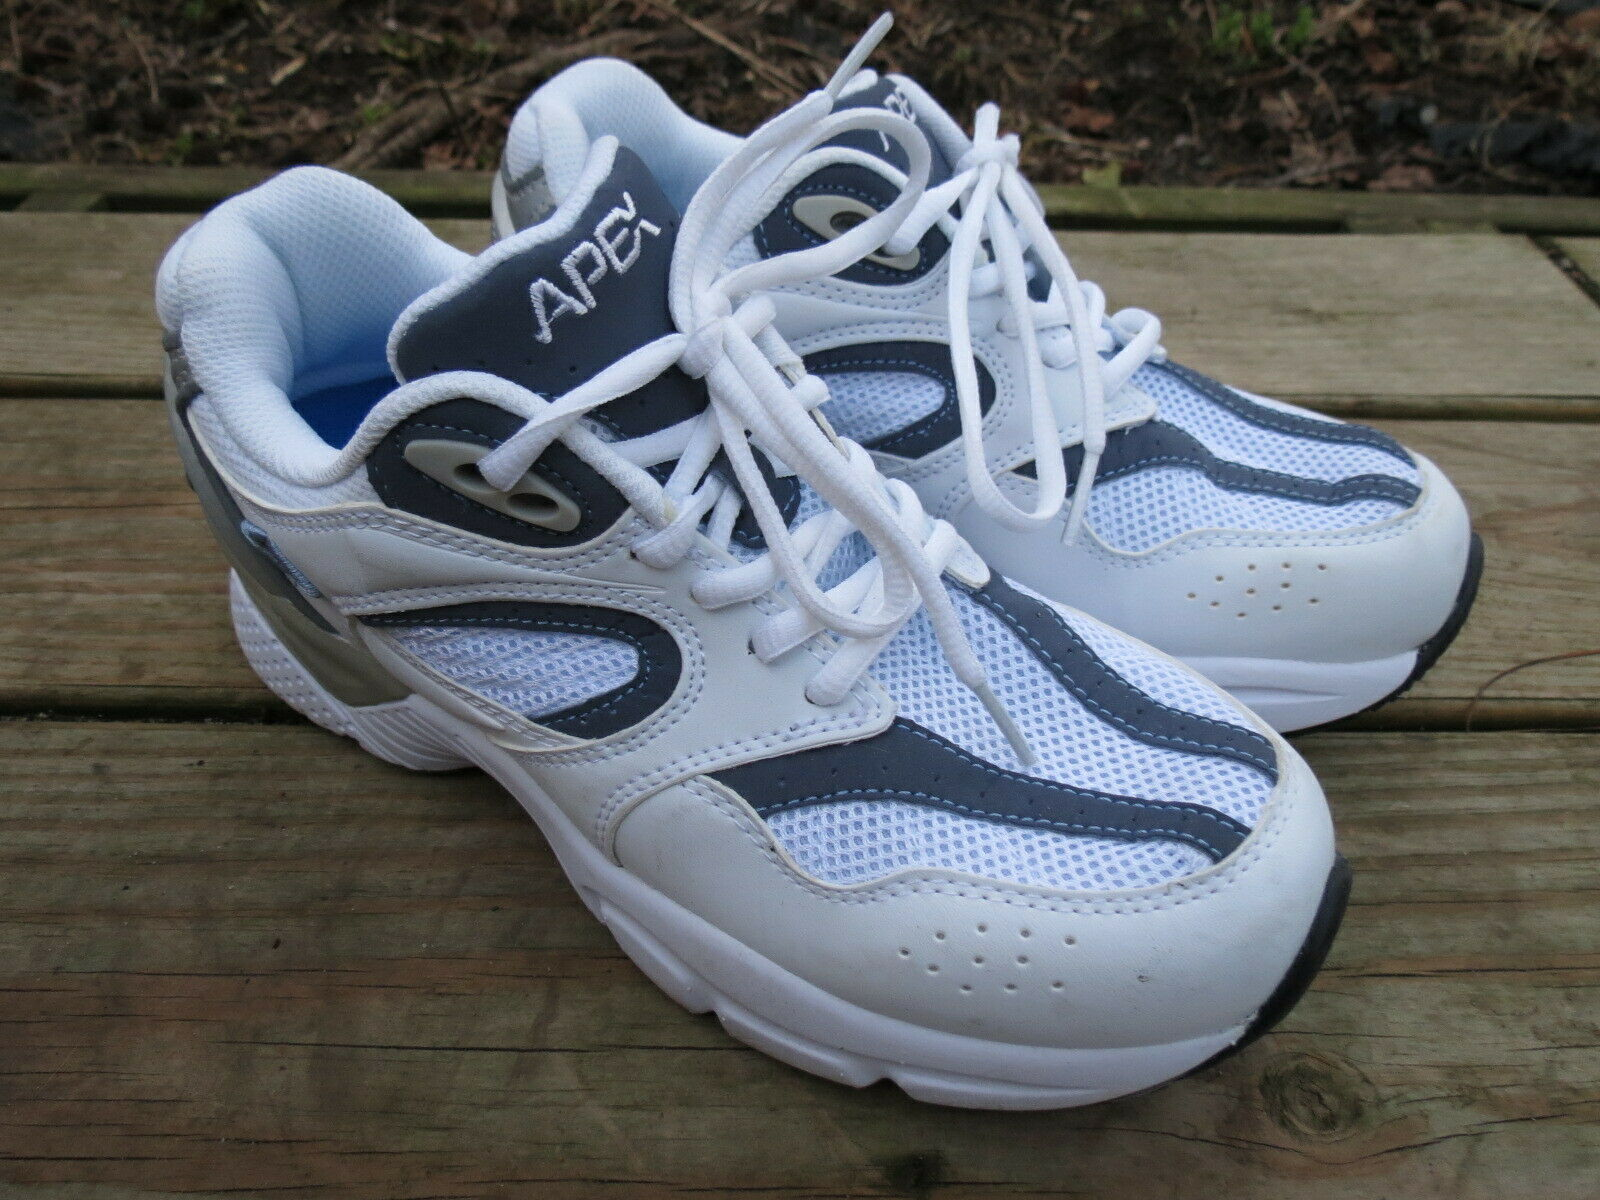 Apex White Navy Boss RN X Last Men's Running shoes Sneakers  Size 7.5 W